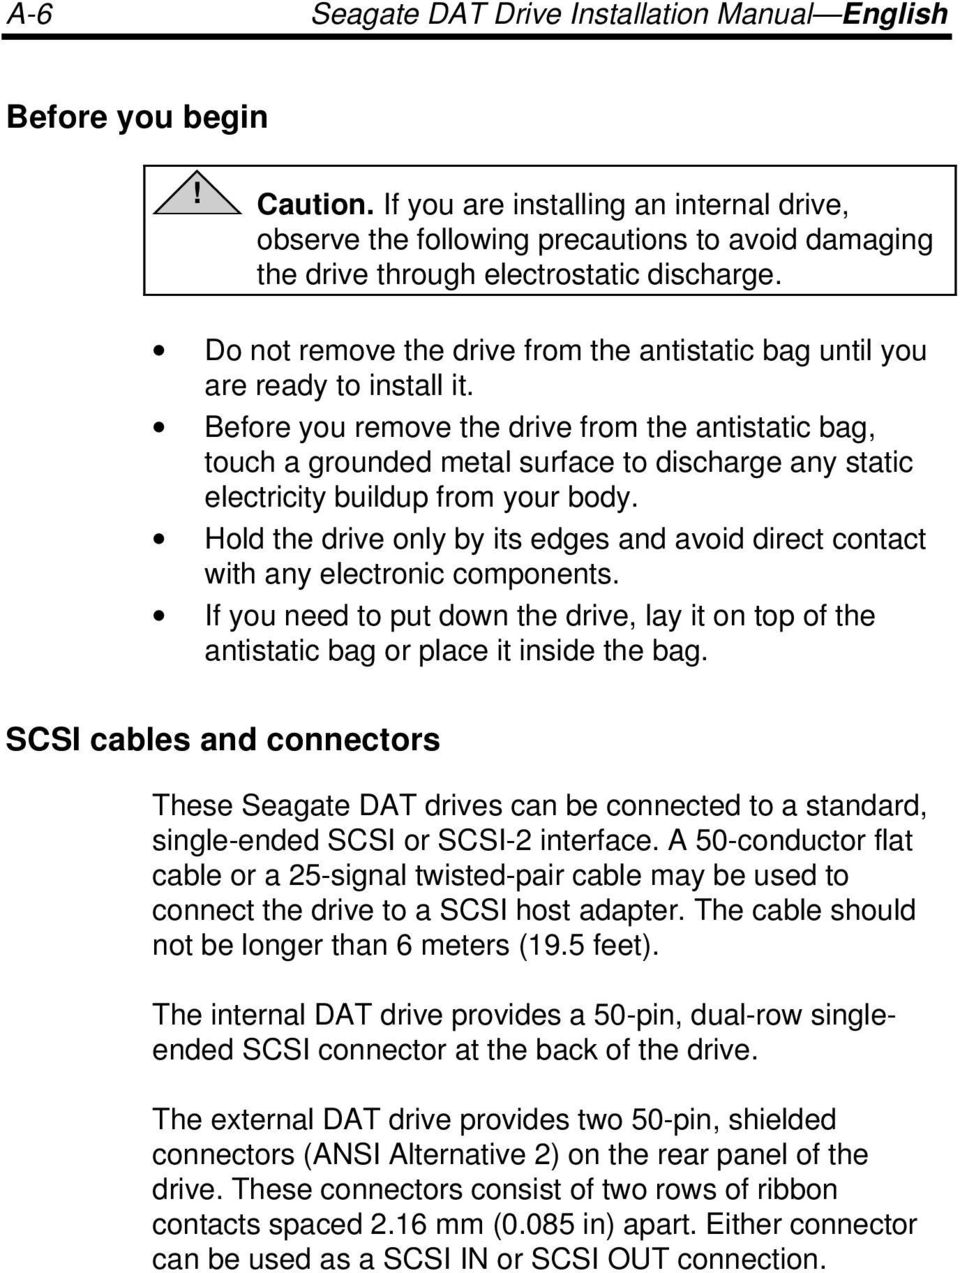 Do not remove the drive from the antistatic bag until you are ready to install it.